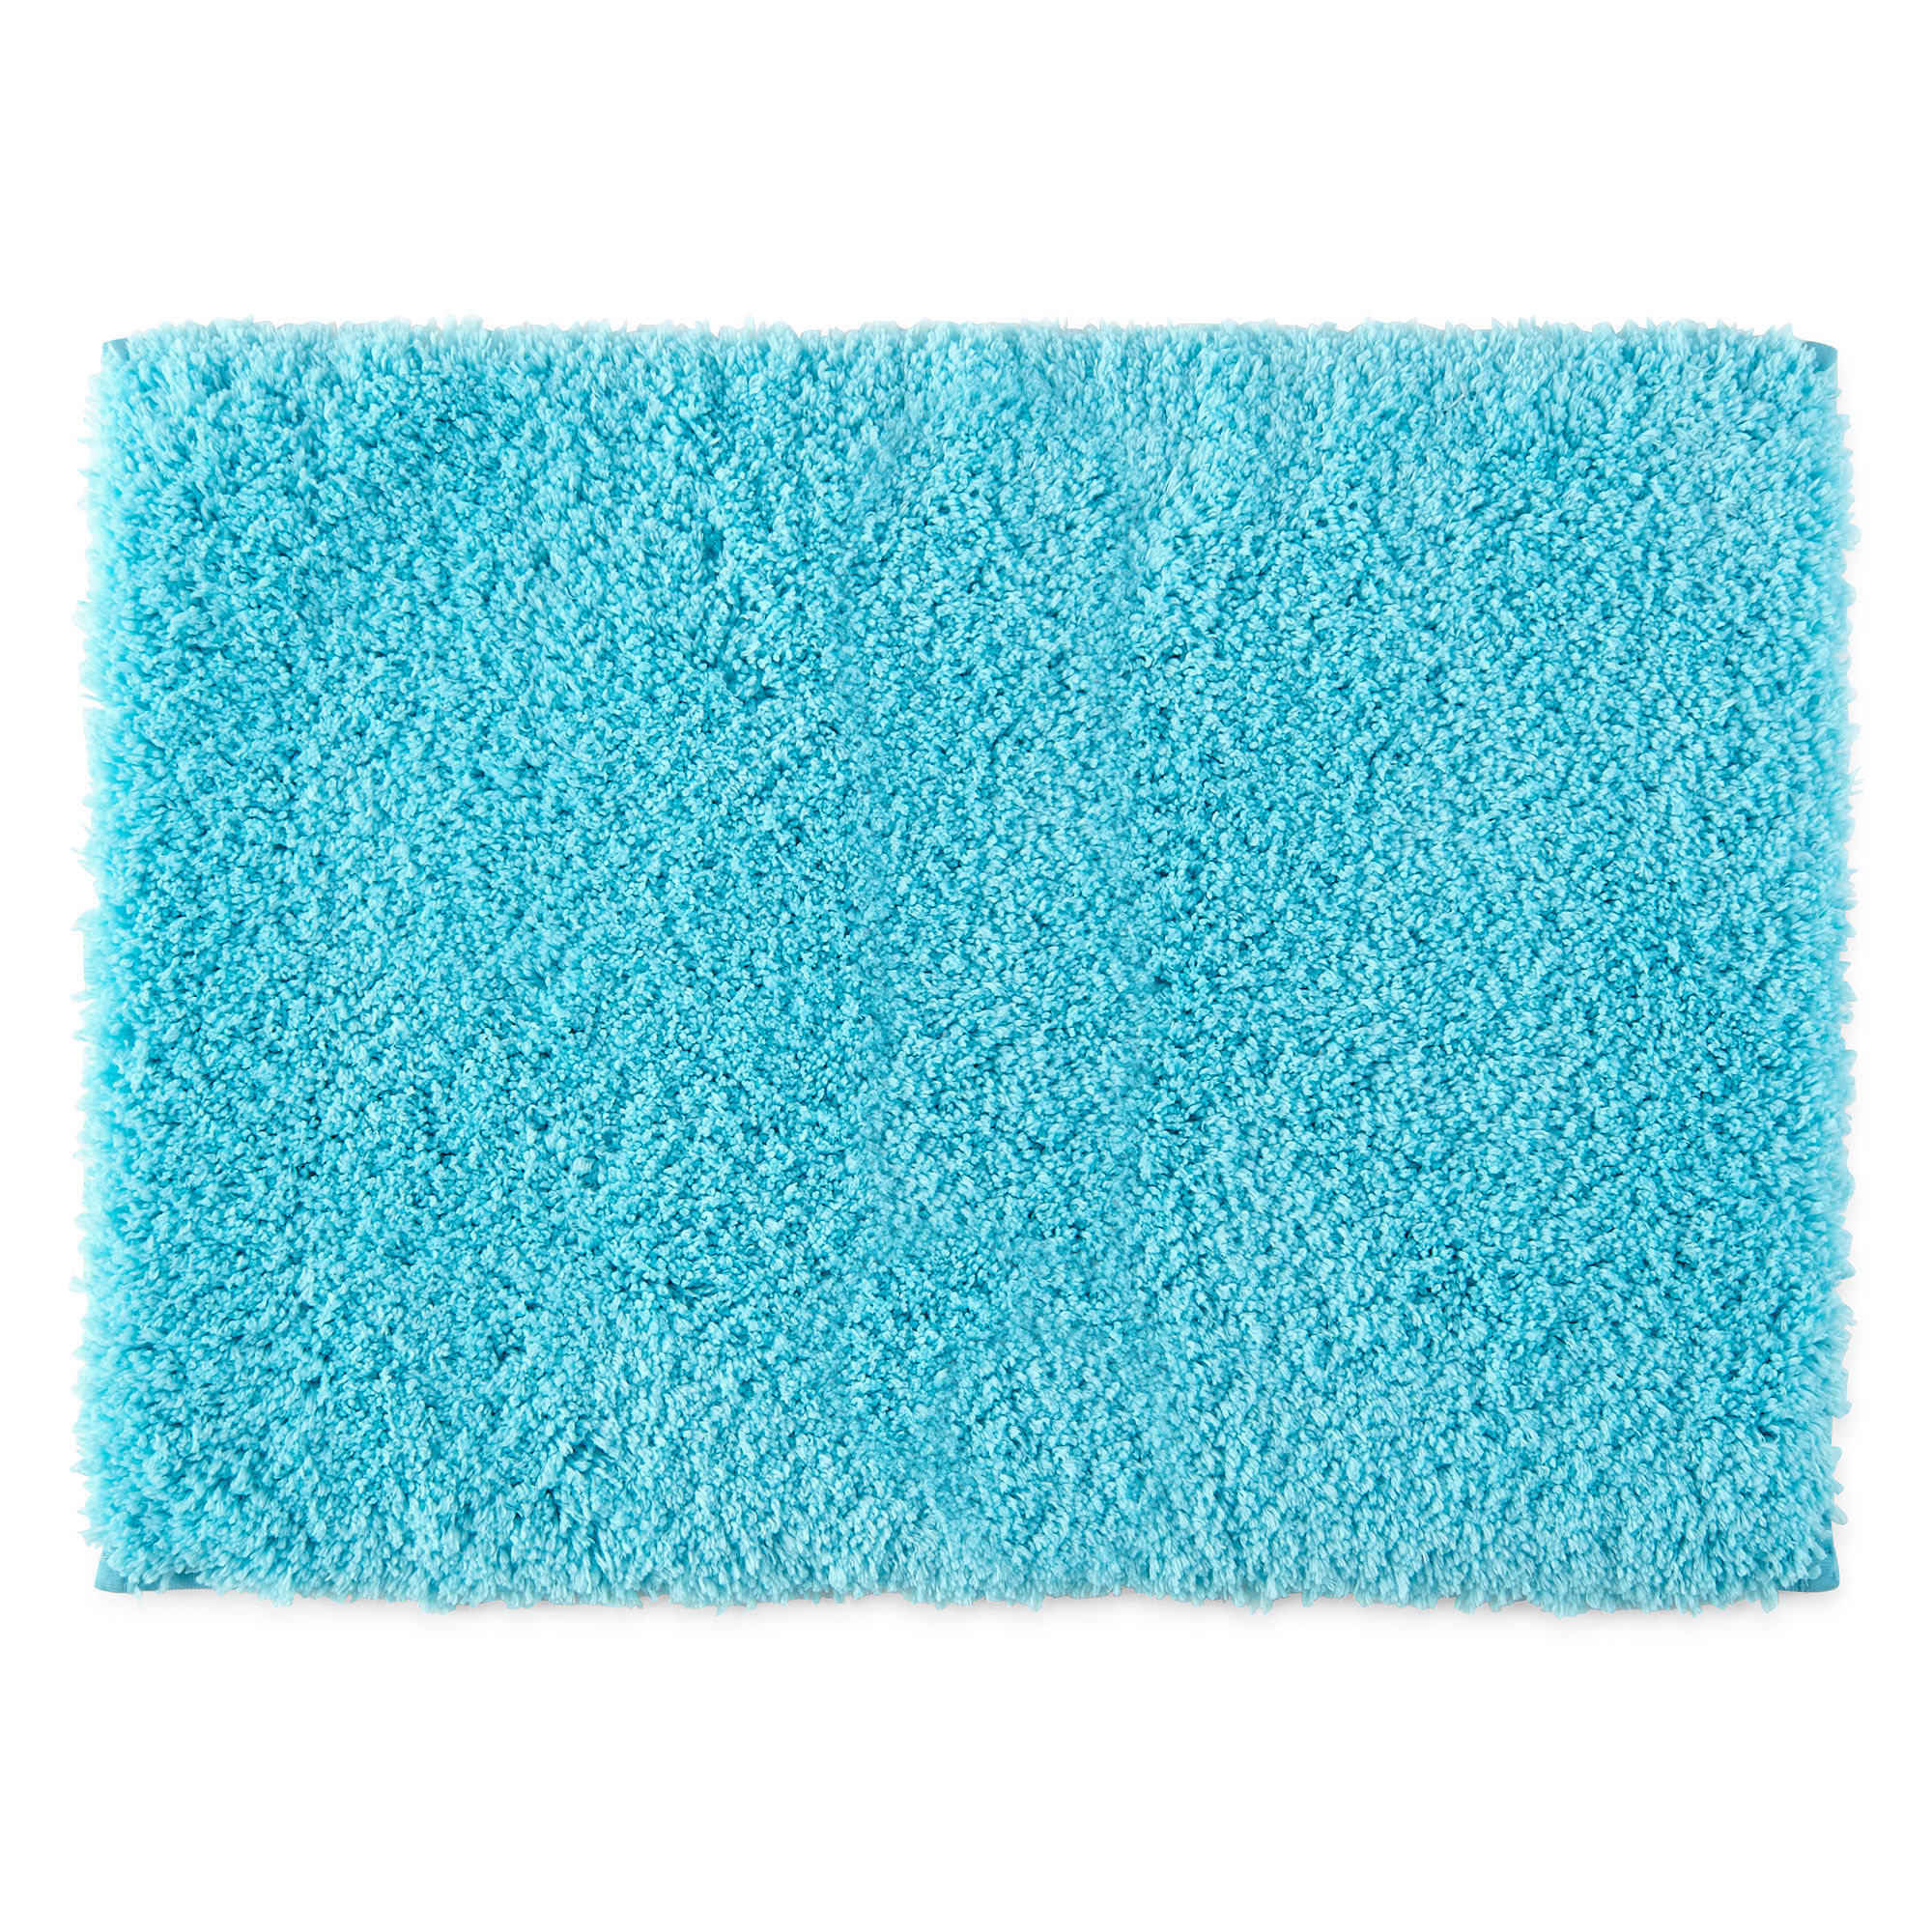 Jcp Home Collection: JCPenney Home™ Drylon Microfiber Bath Rug Collection